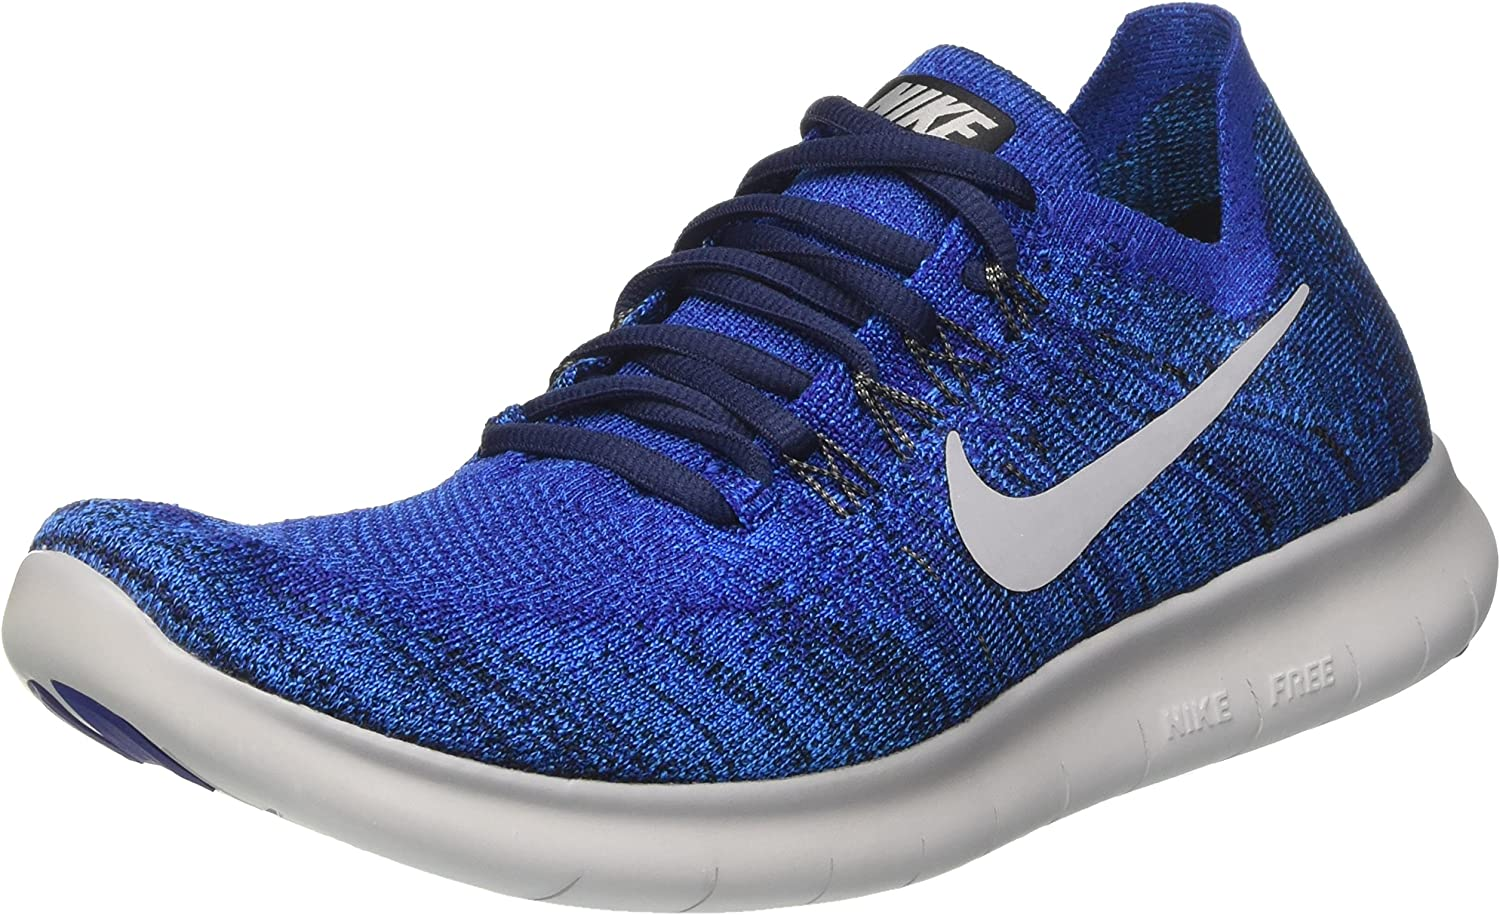 Nike Free Rn Flyknit 2017, Zapatillas de Running Hombre, Azul (Binary Blue/White/Mega Blue/Wolf Grey), 40.5 EU: Amazon.es: Zapatos y complementos